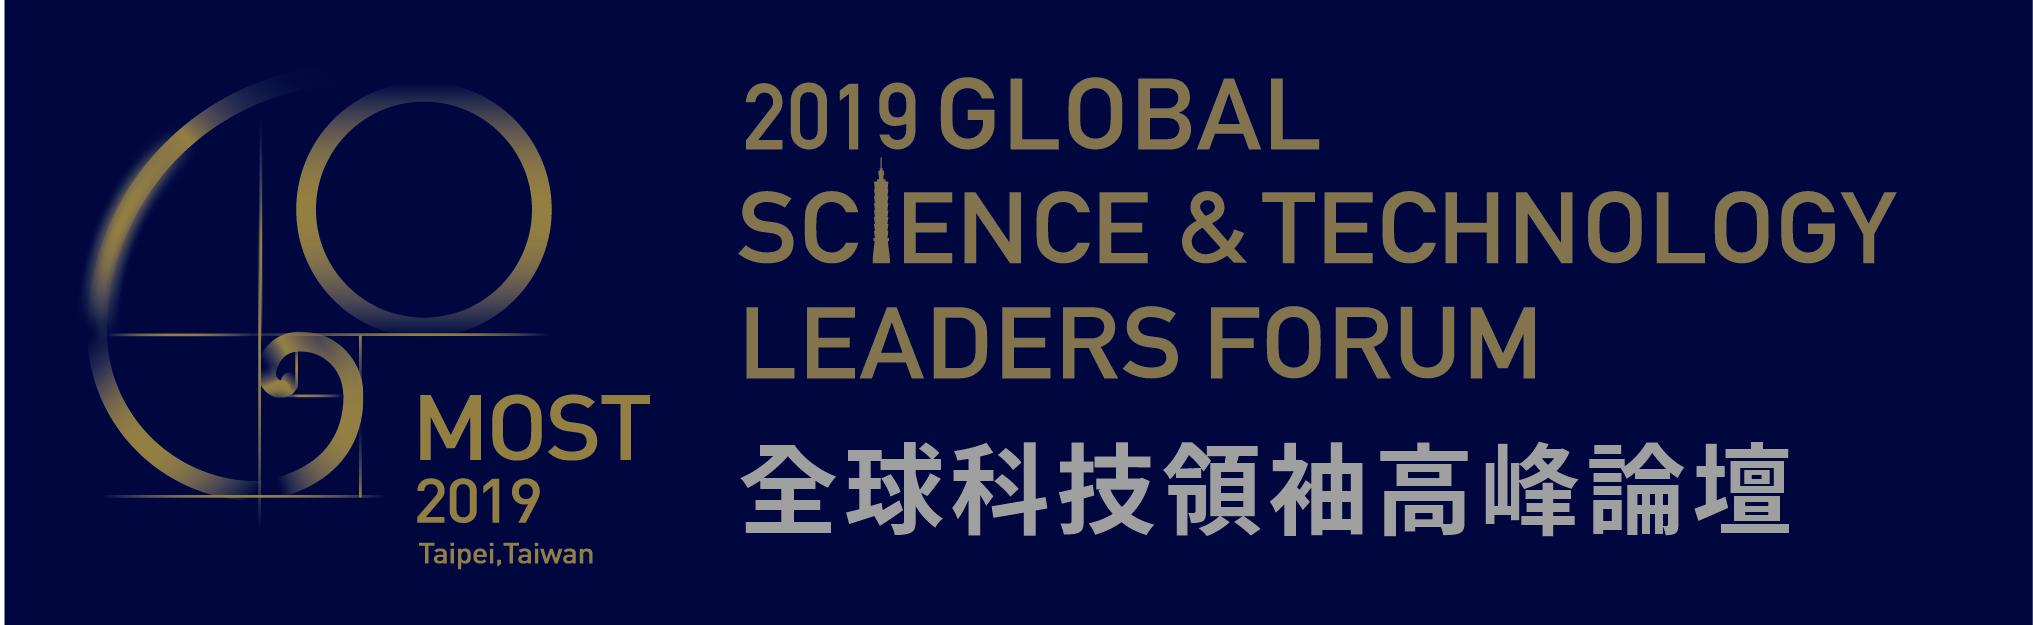 2019 MOST Global Science and Technology Leaders Forum